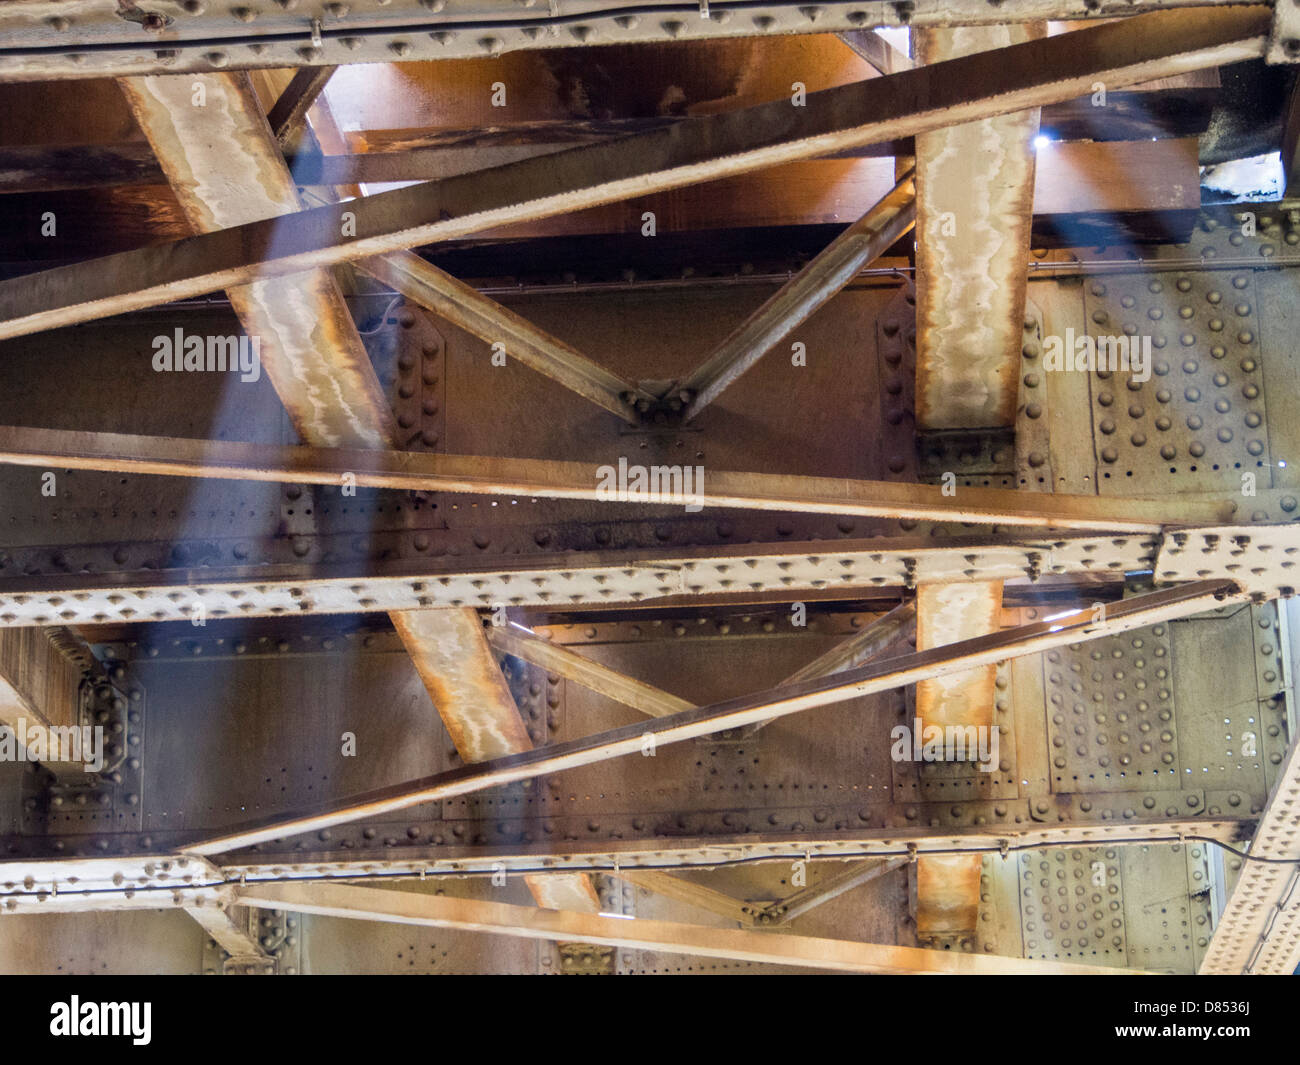 Shafts of light below railway tracks on a bridge in Amsterdam, Netherlands. Stock Photo